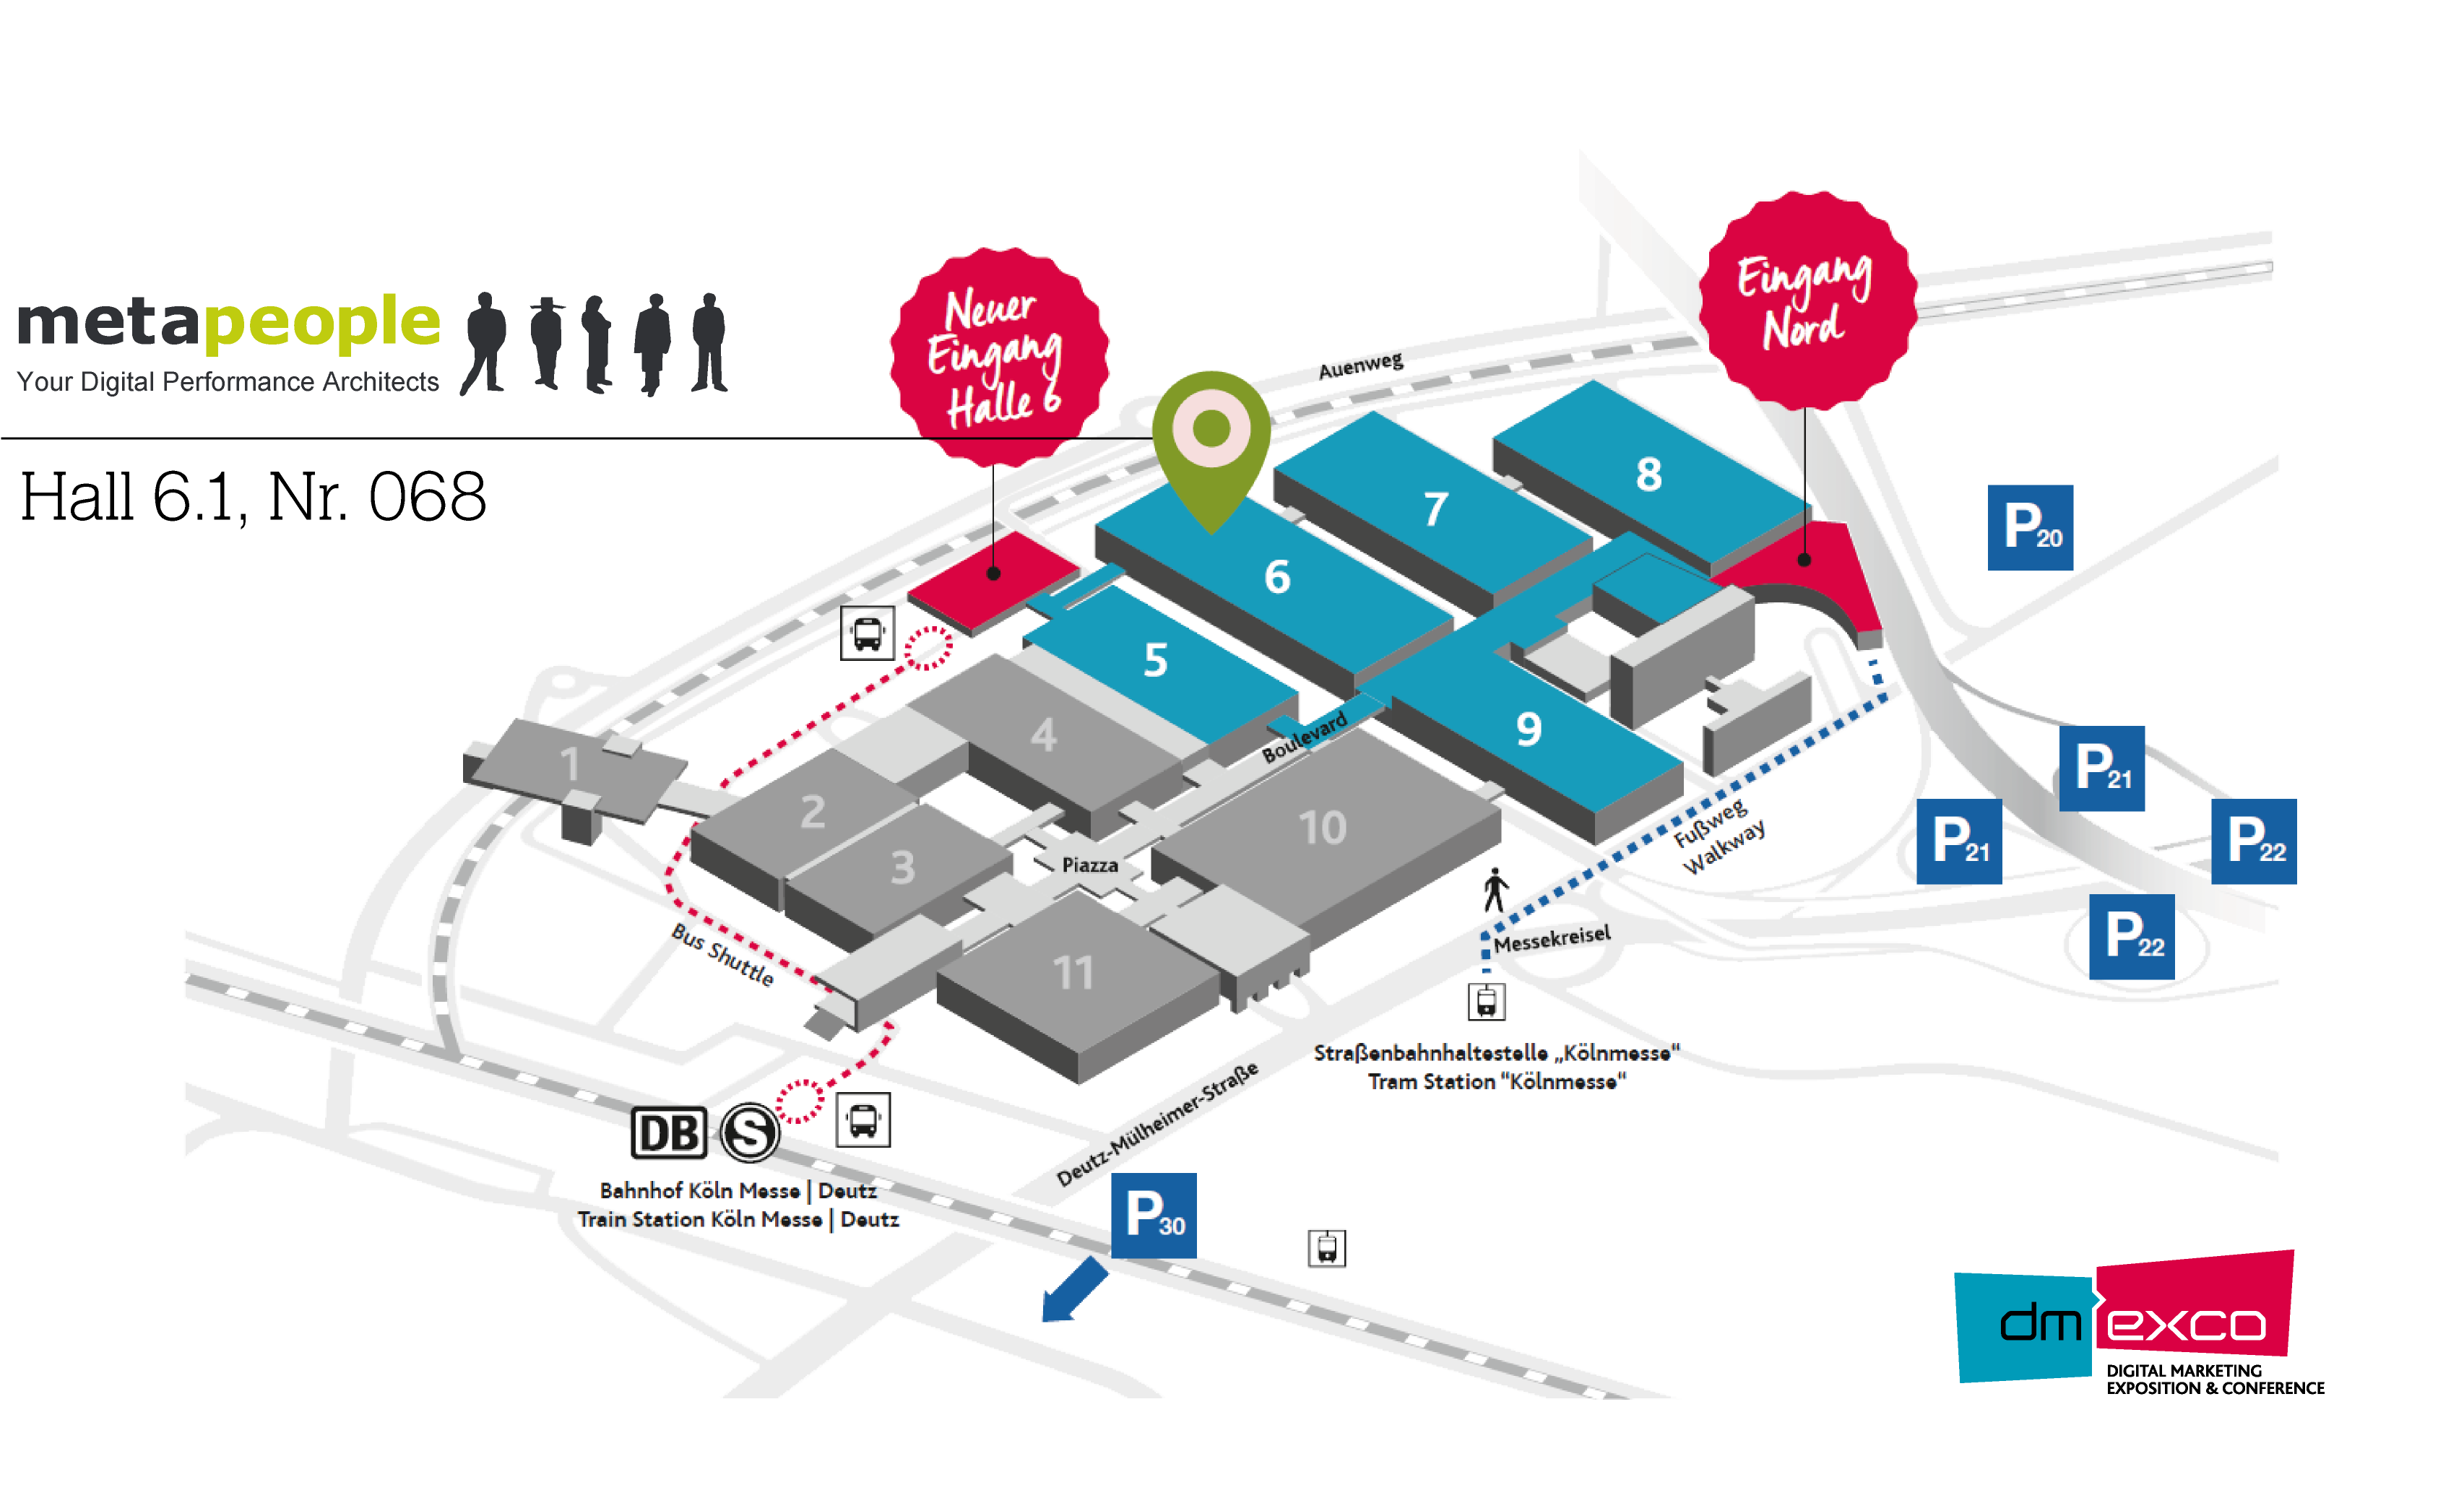 NetBooster Group takes part in dmexco 2016